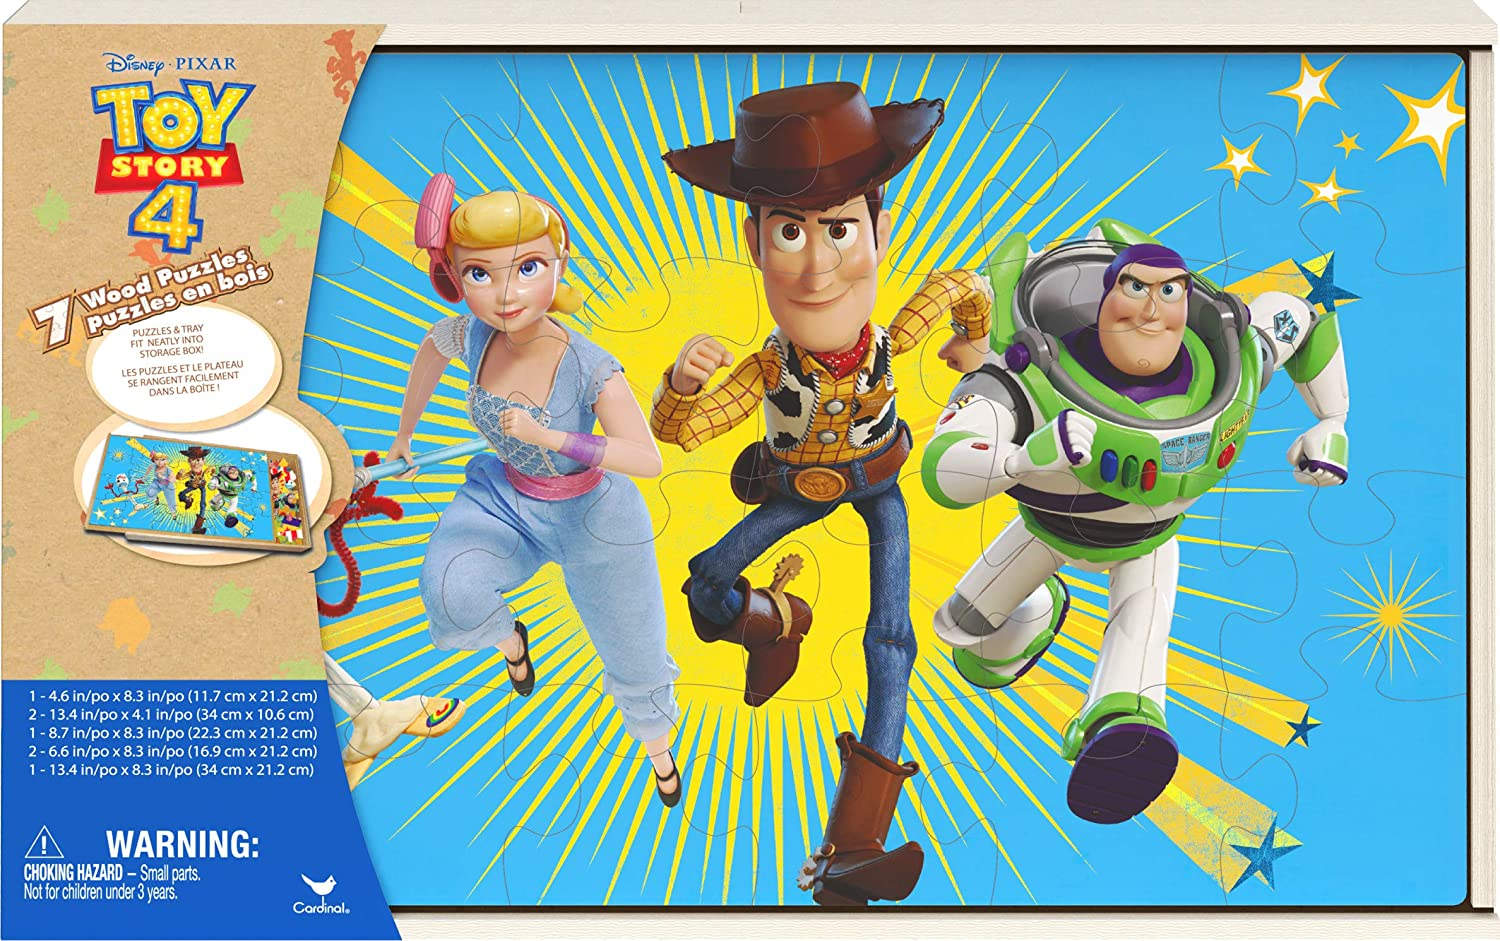 Toy Story 4 Jigsaw Puzzles Topics on TV for Set with Kids Kansas City Mall of Wood 7